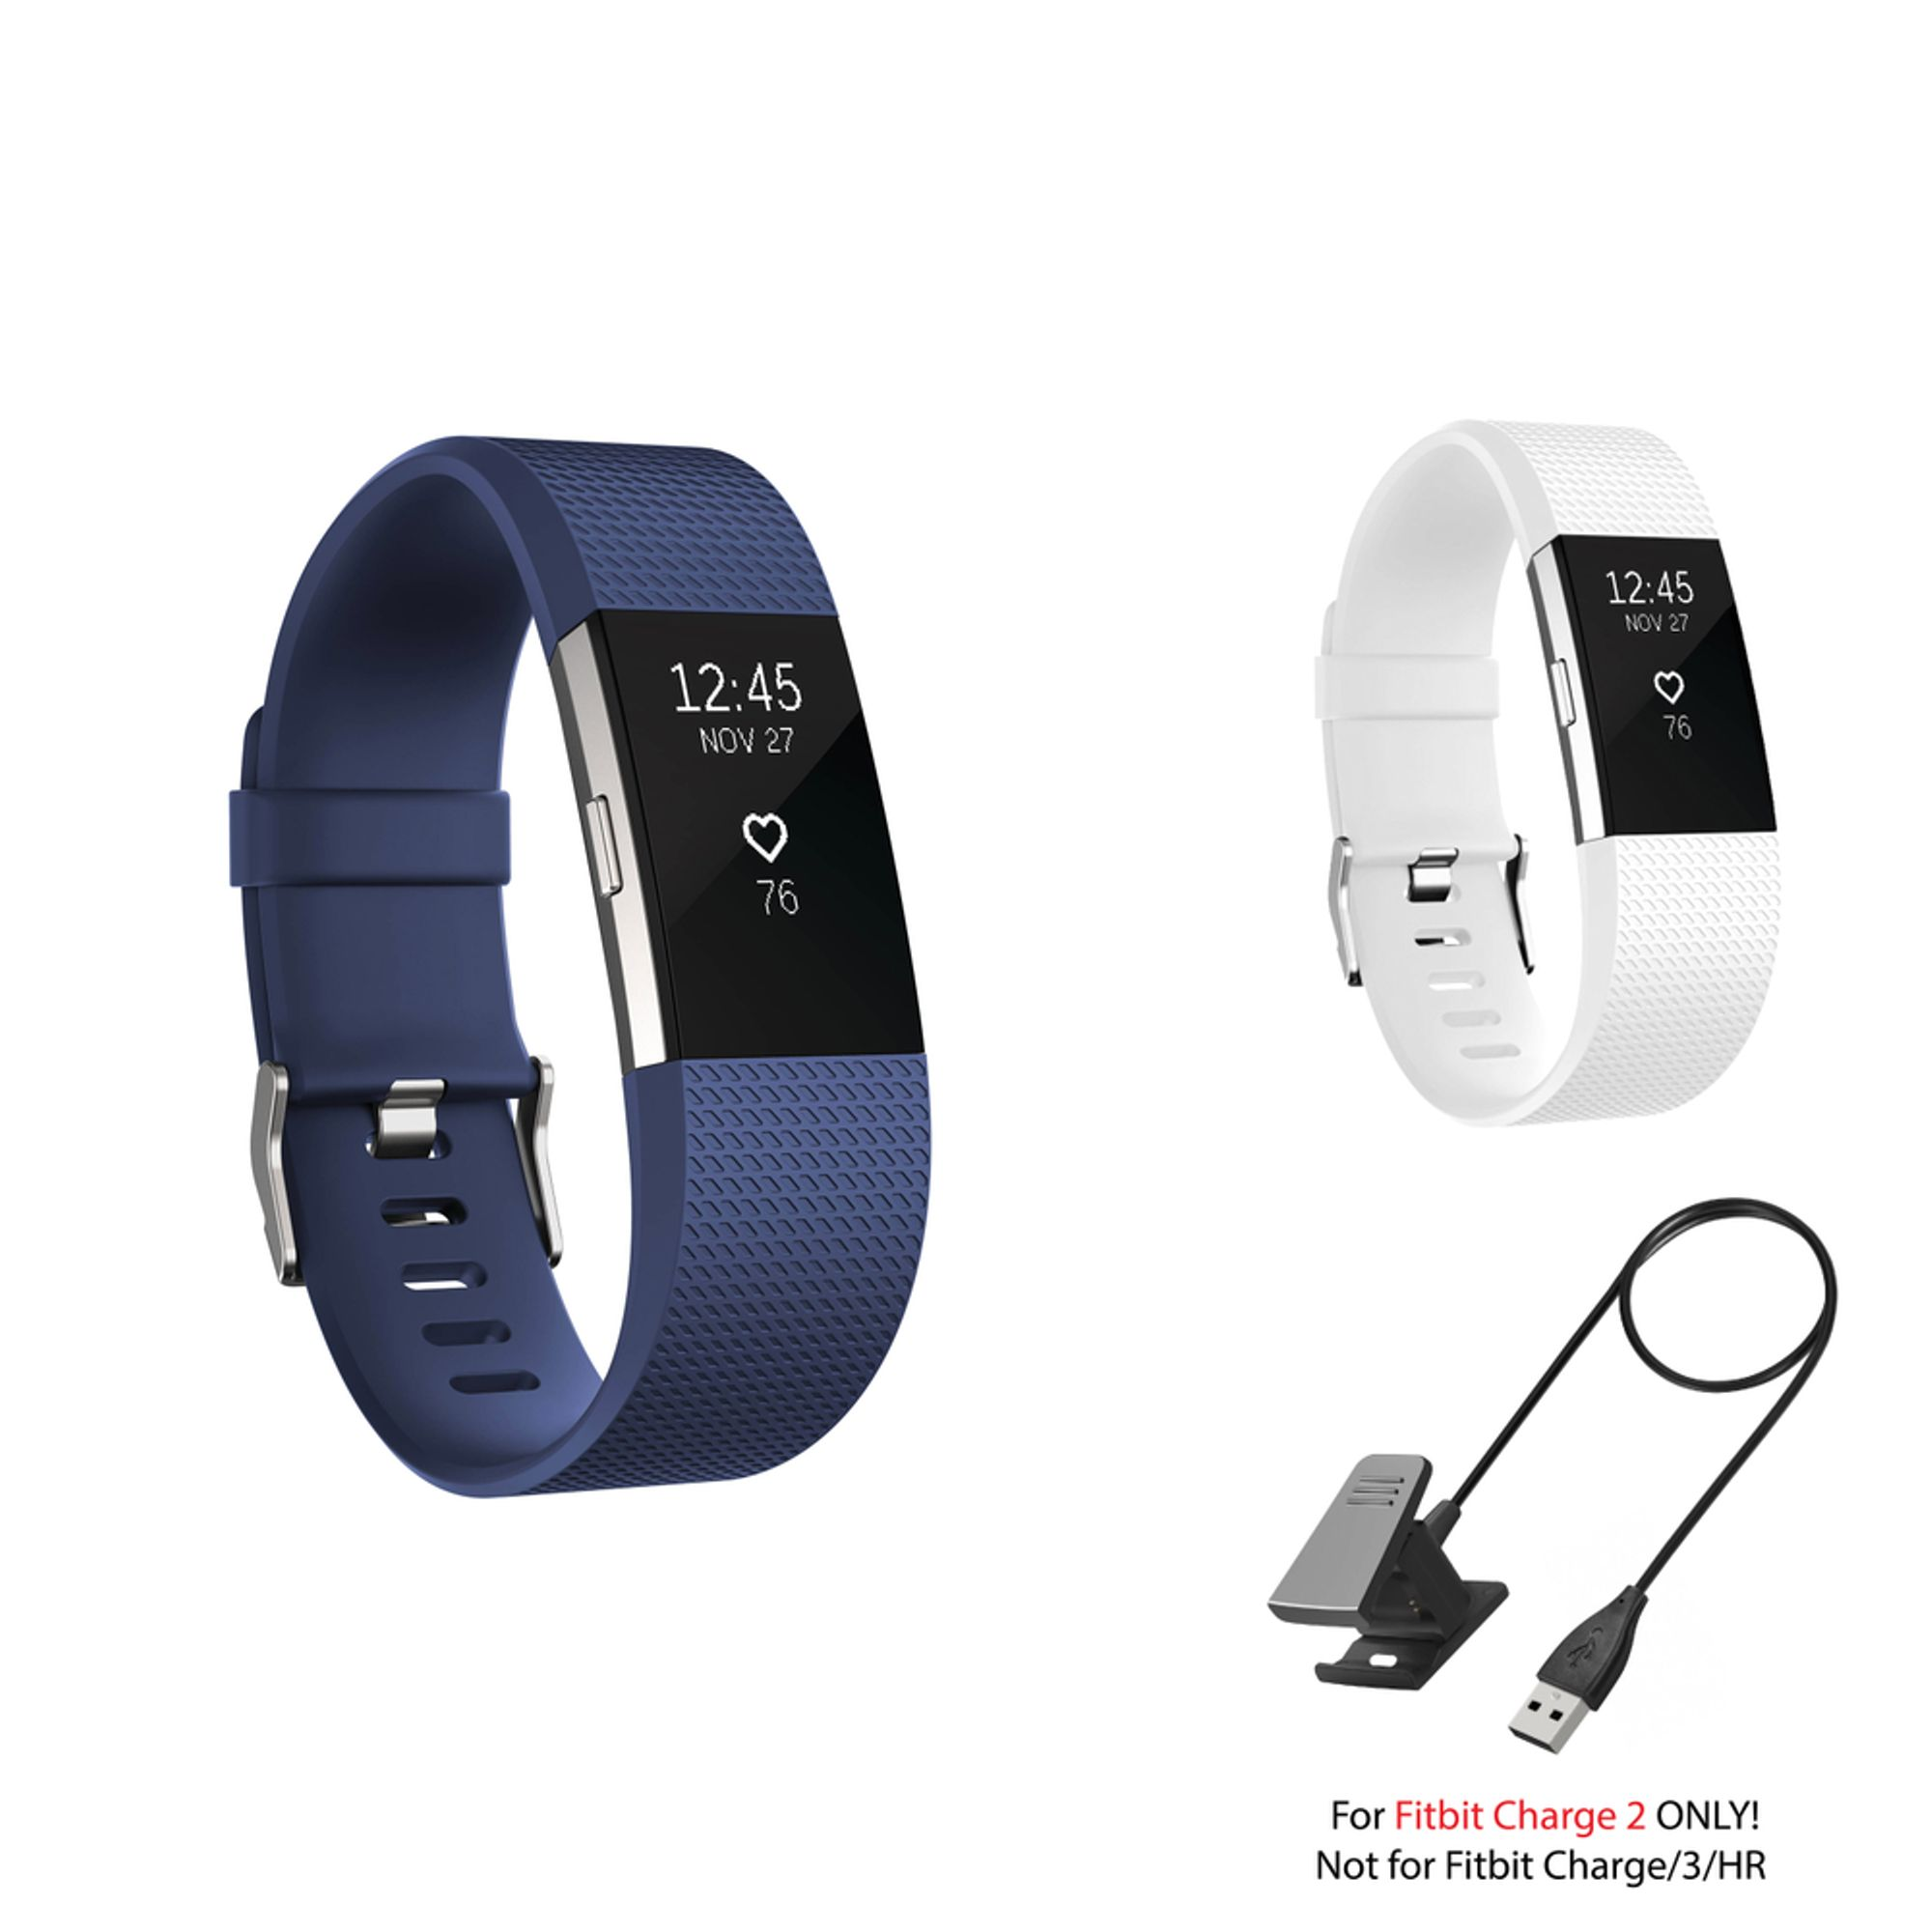 Fitbit Charge 2 Bands and Fitbit Charge 2 Charger by Zodaca 2 pc (Drak Blue & White) Replacement Bands Rubber Wristband Fashion Sport Strap with Metal Buckle and USB Charging Cable for Fitbit Charge 2